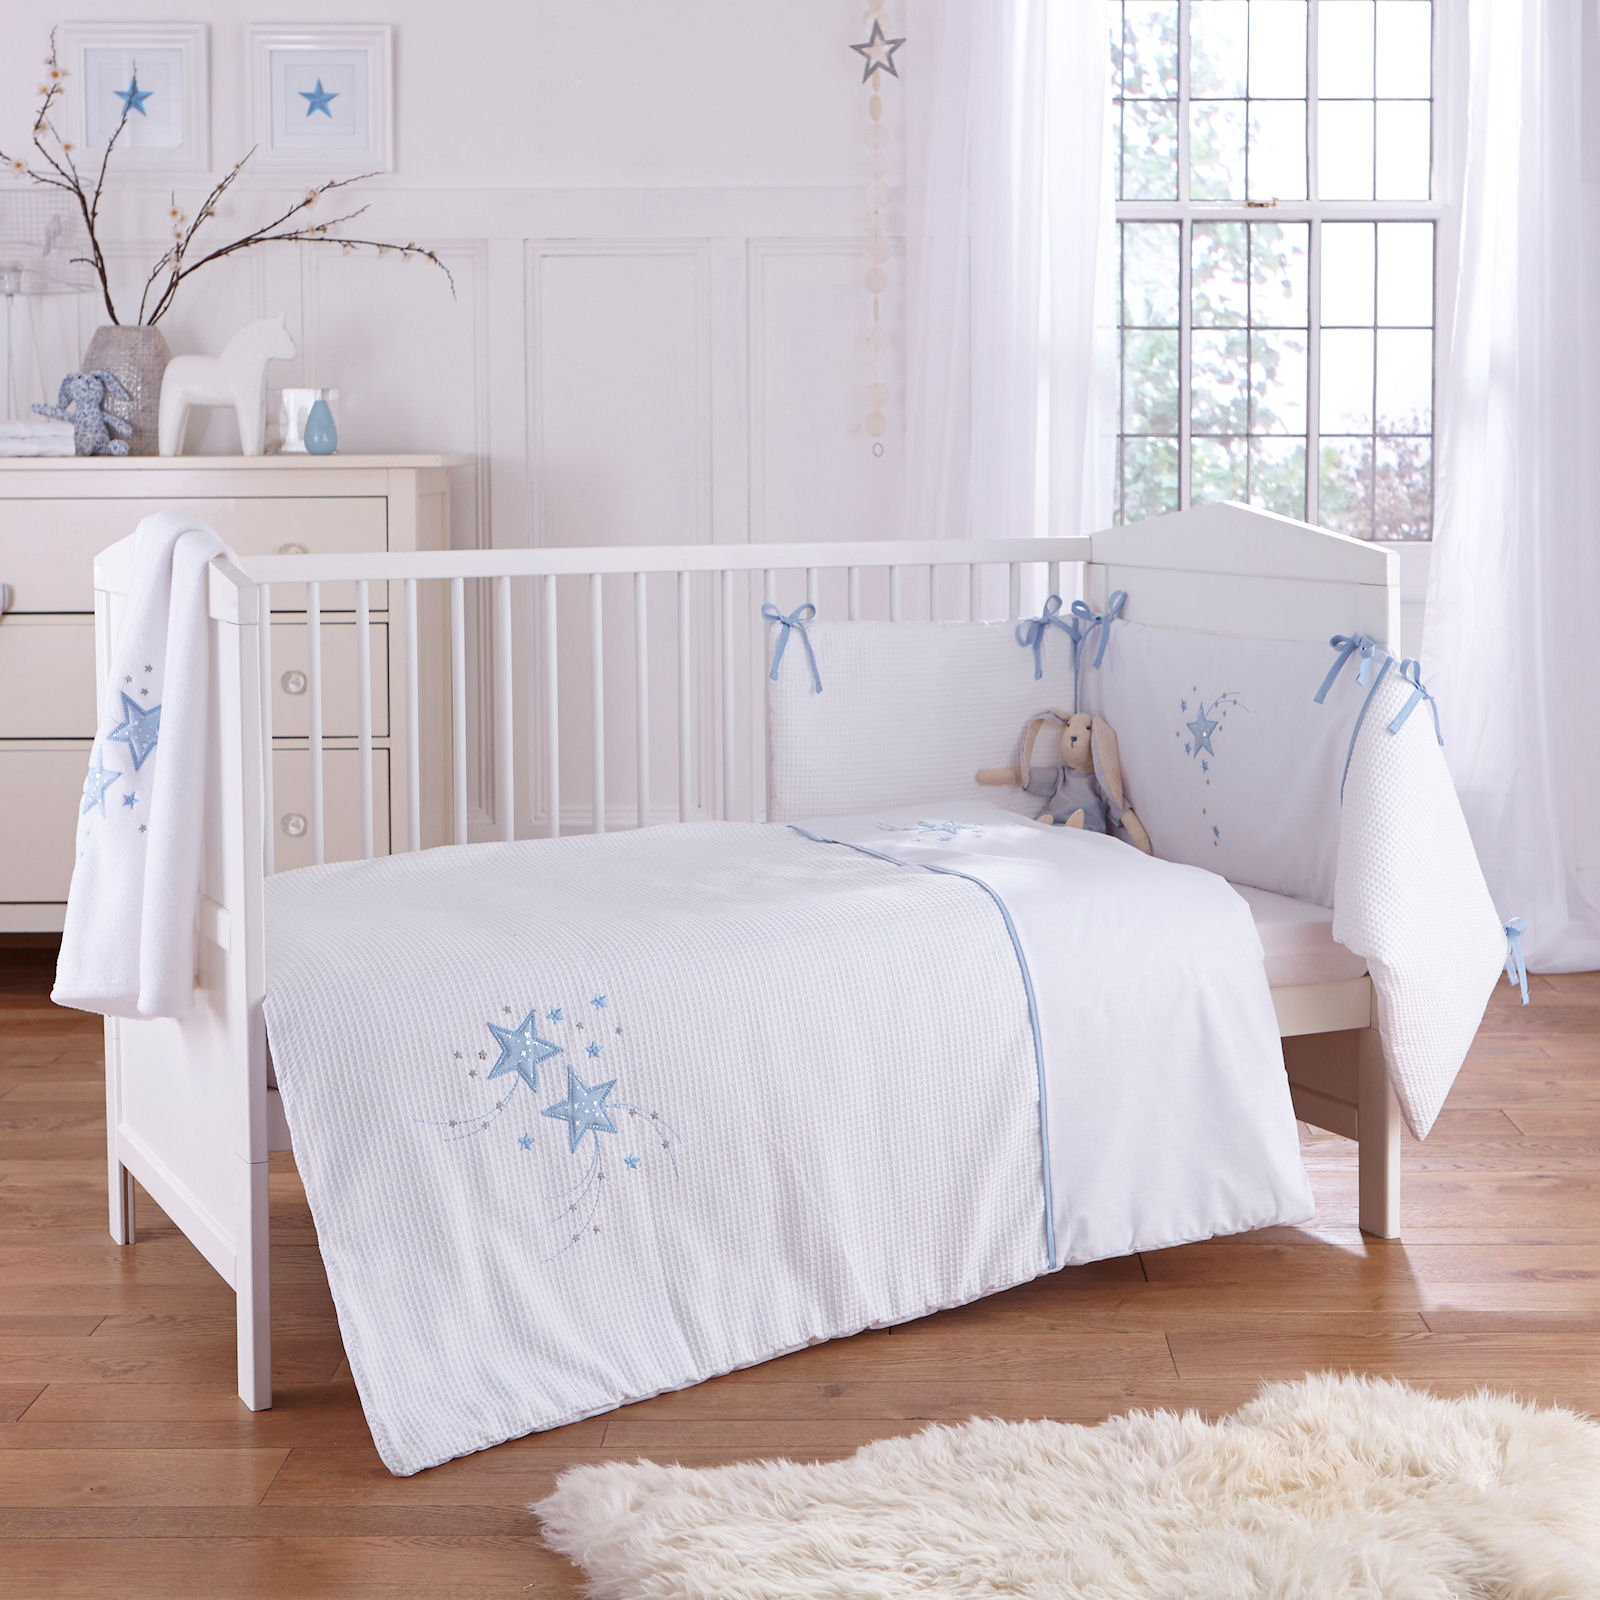 beach white the to adult comfort interior pleasing themed pillows bed with on blue fish set bedding and cushions complete make for star